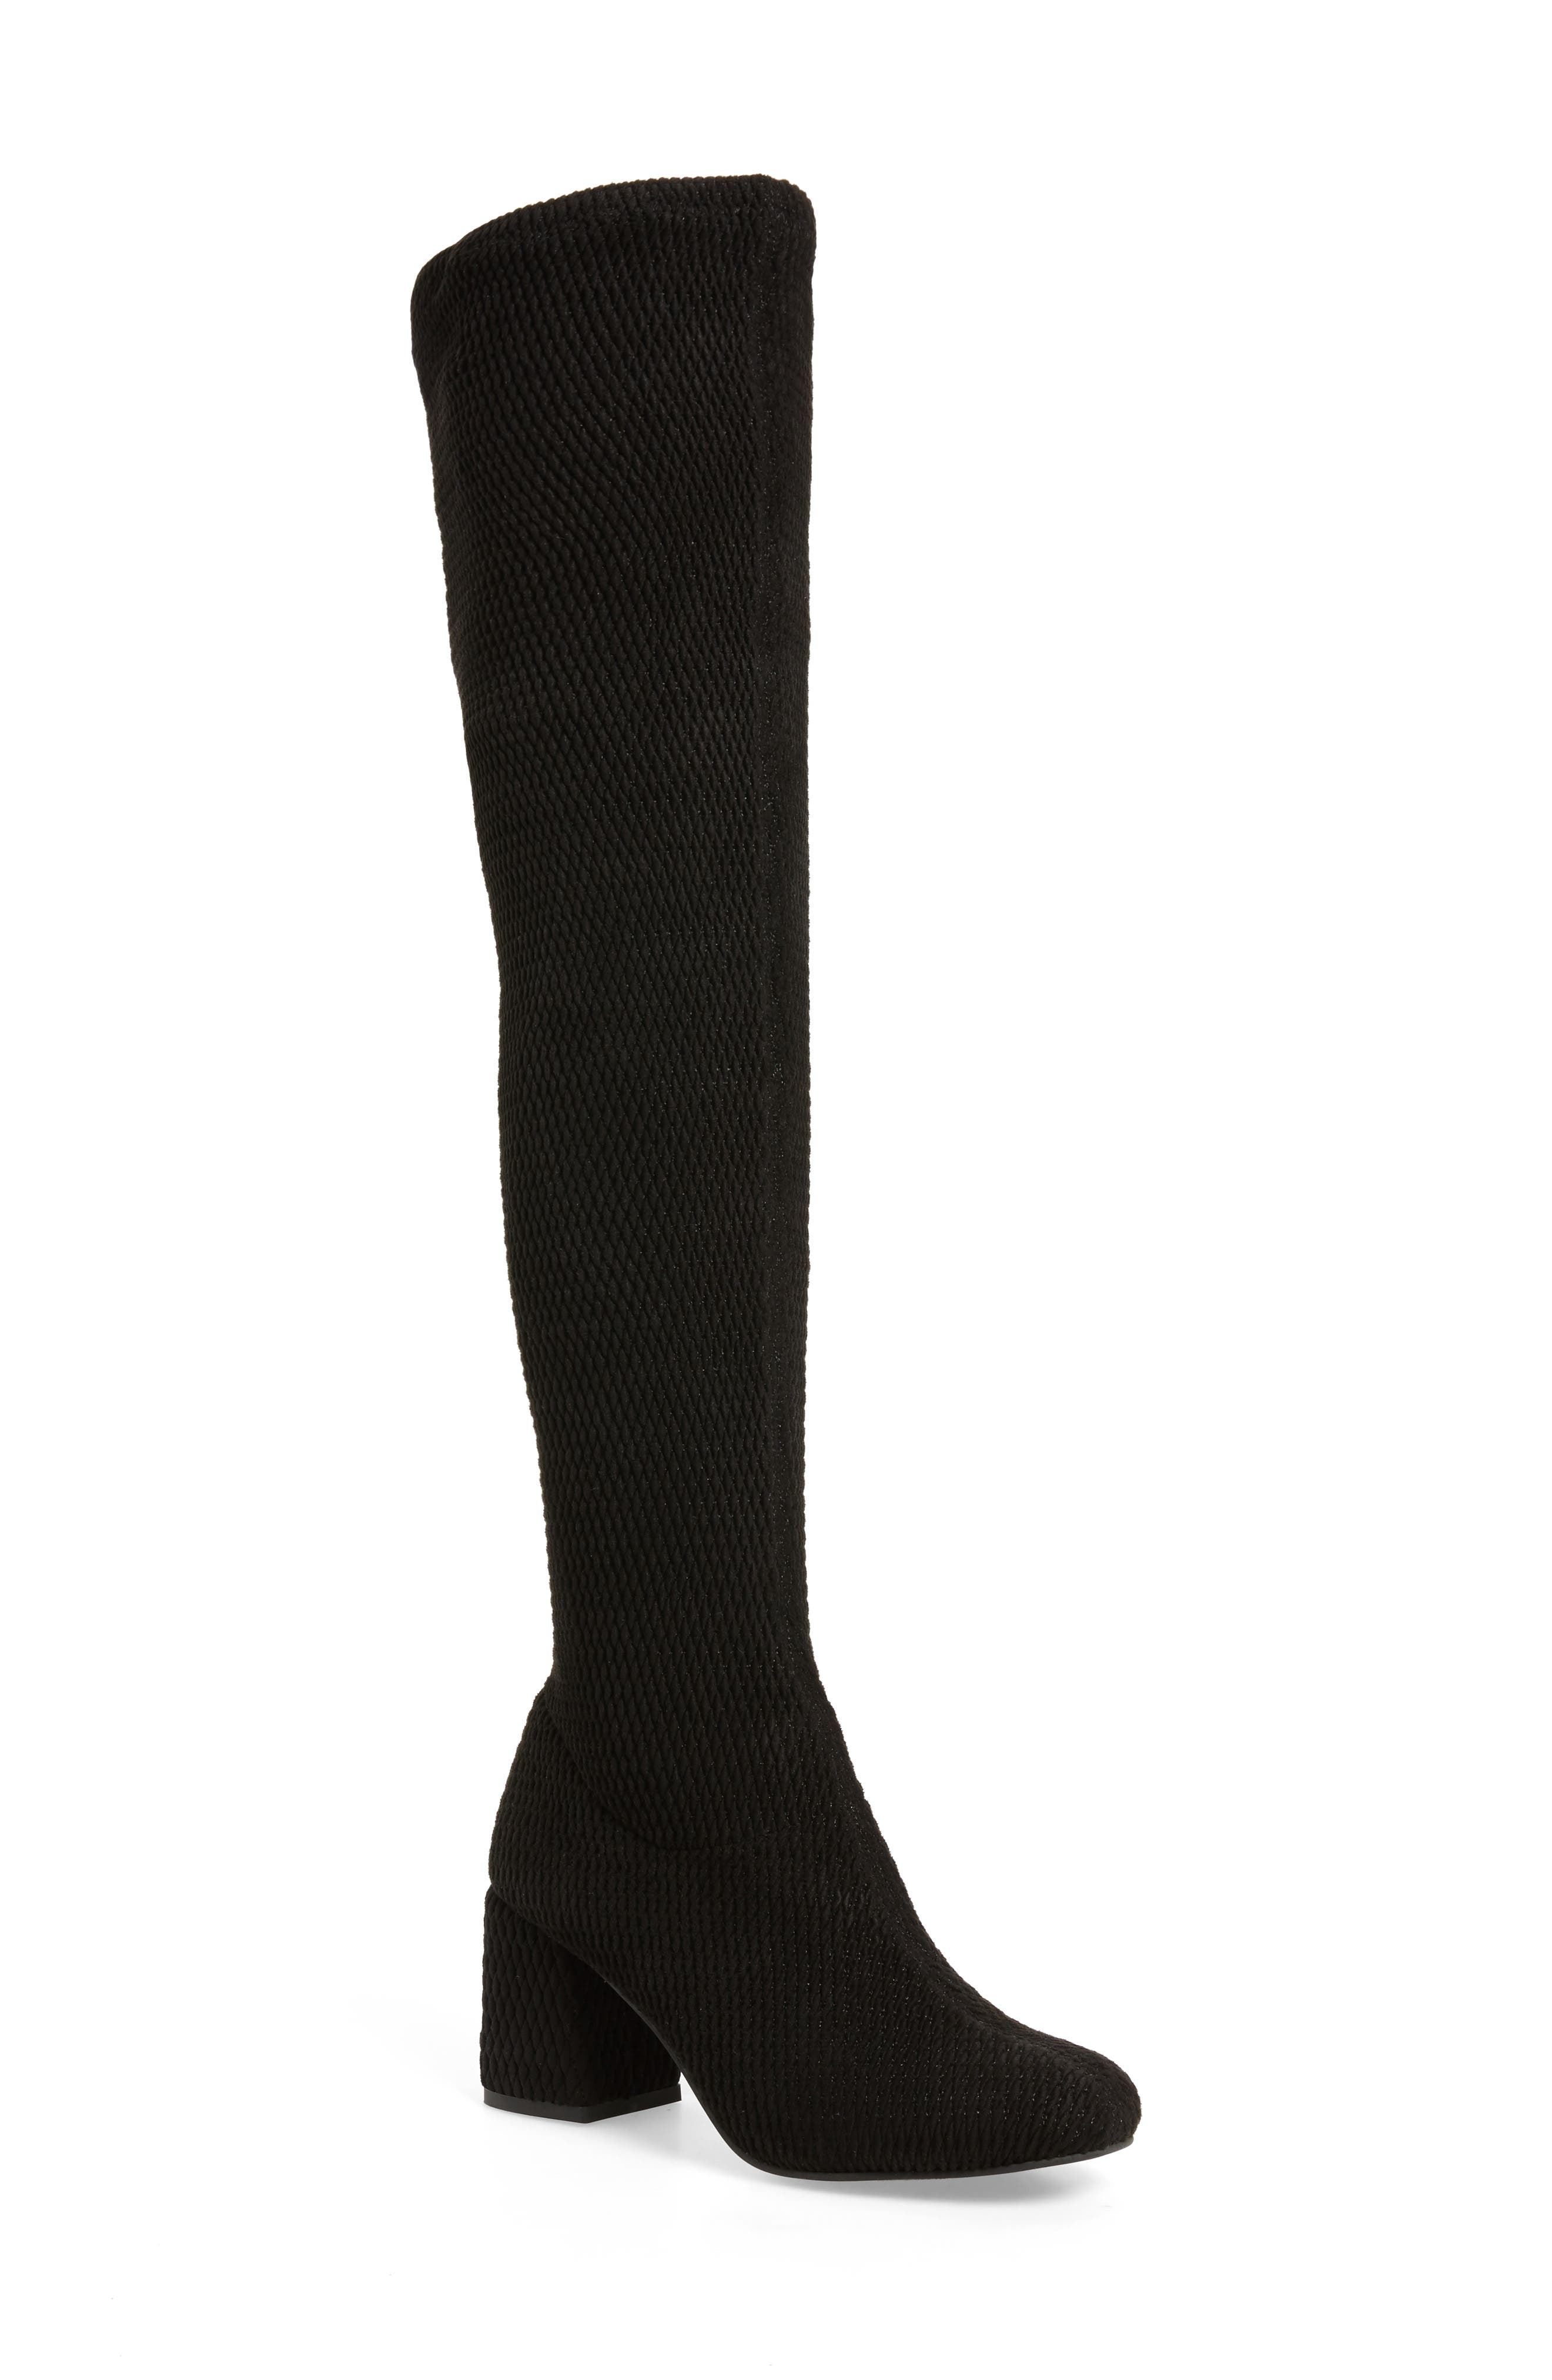 Act One Stretch Over the Knee Boot,                         Main,                         color, 001